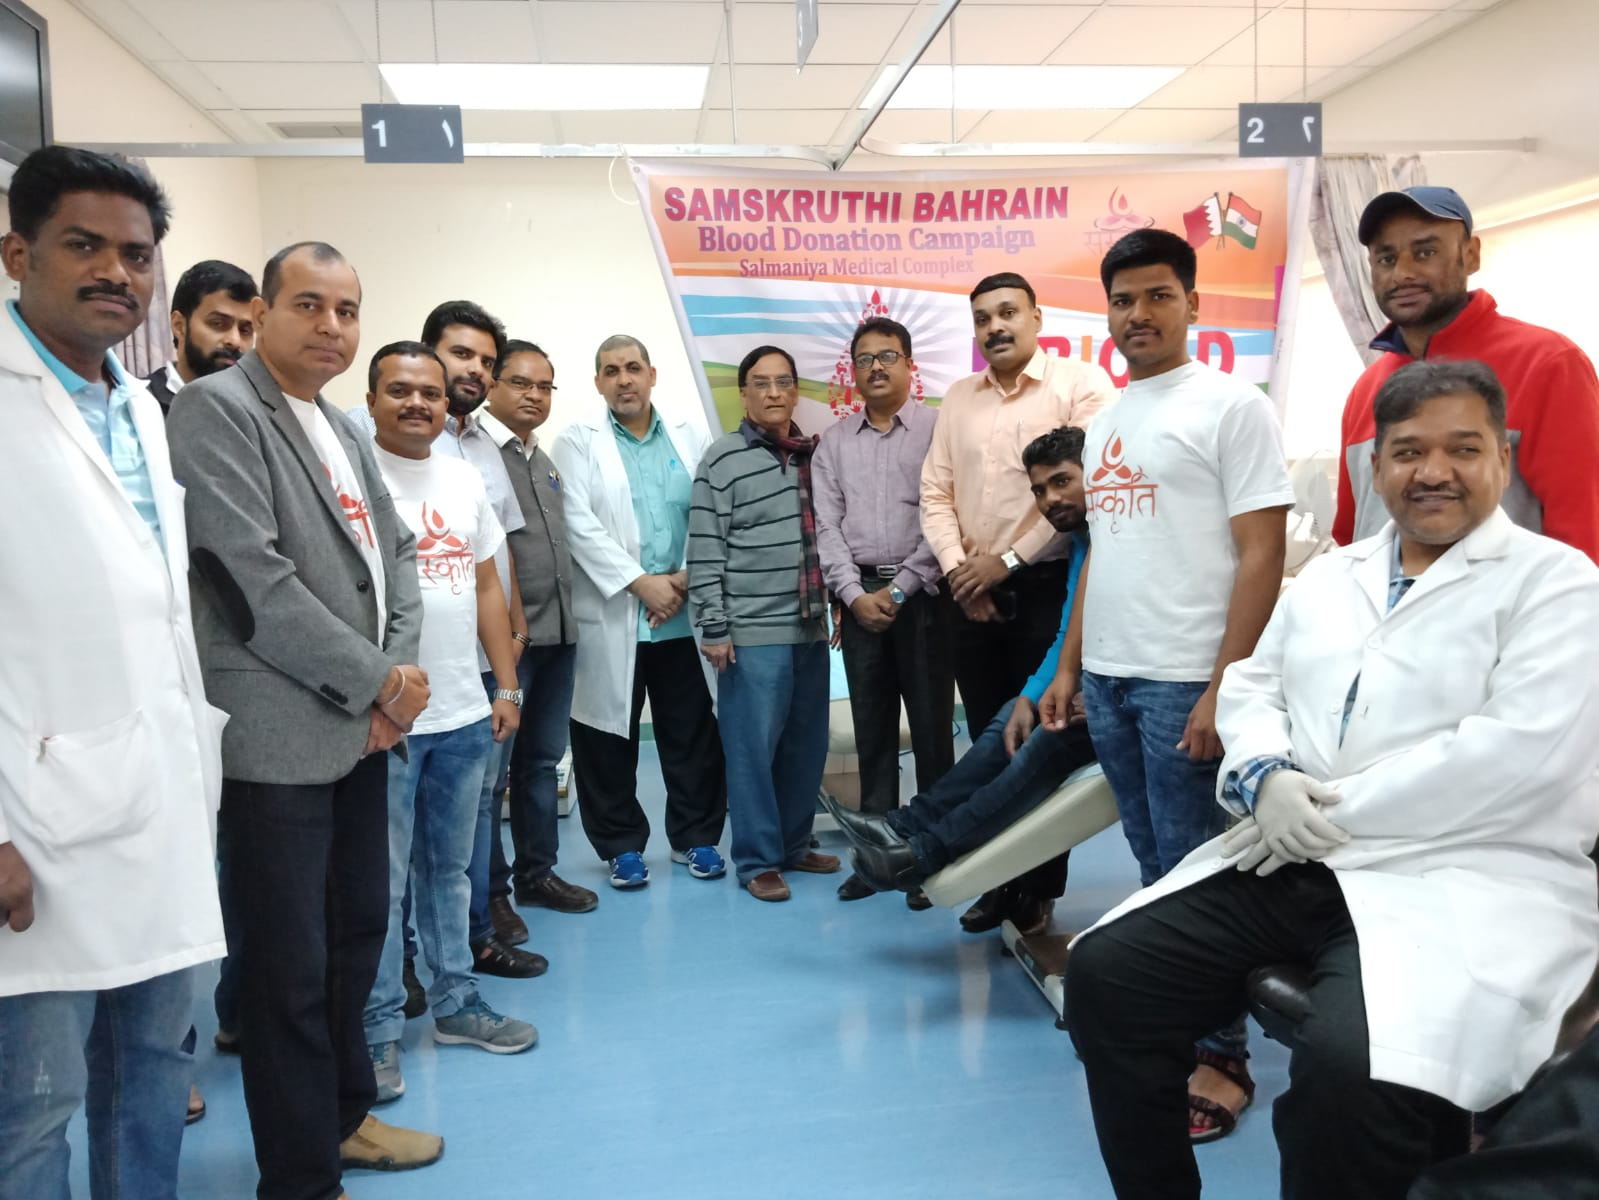 <p>More than 140 people donated blood at a camp held at Salmaniya Medical Complex last week. The event, organised by an Indian community organisation Samskruti, saw participation from members and volunteers. The blood collected was donated to the hospital's blood bank.</p>